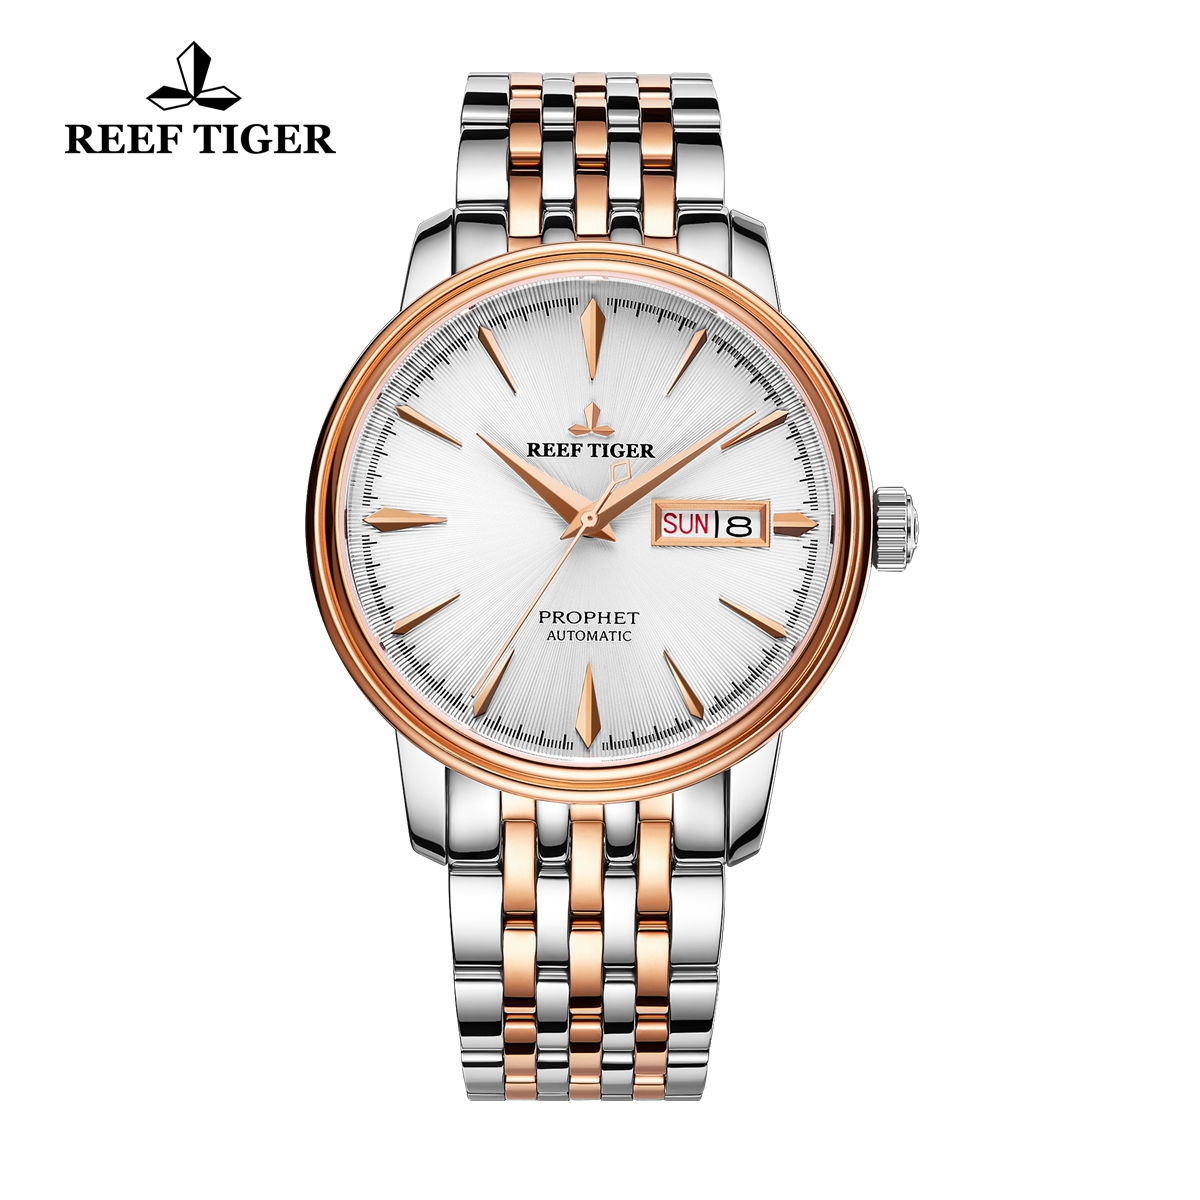 Reef Tiger Prophet Men's Luxury Automatic Business Rose Gold/Steel White Dial Watch RGA8236-PWT